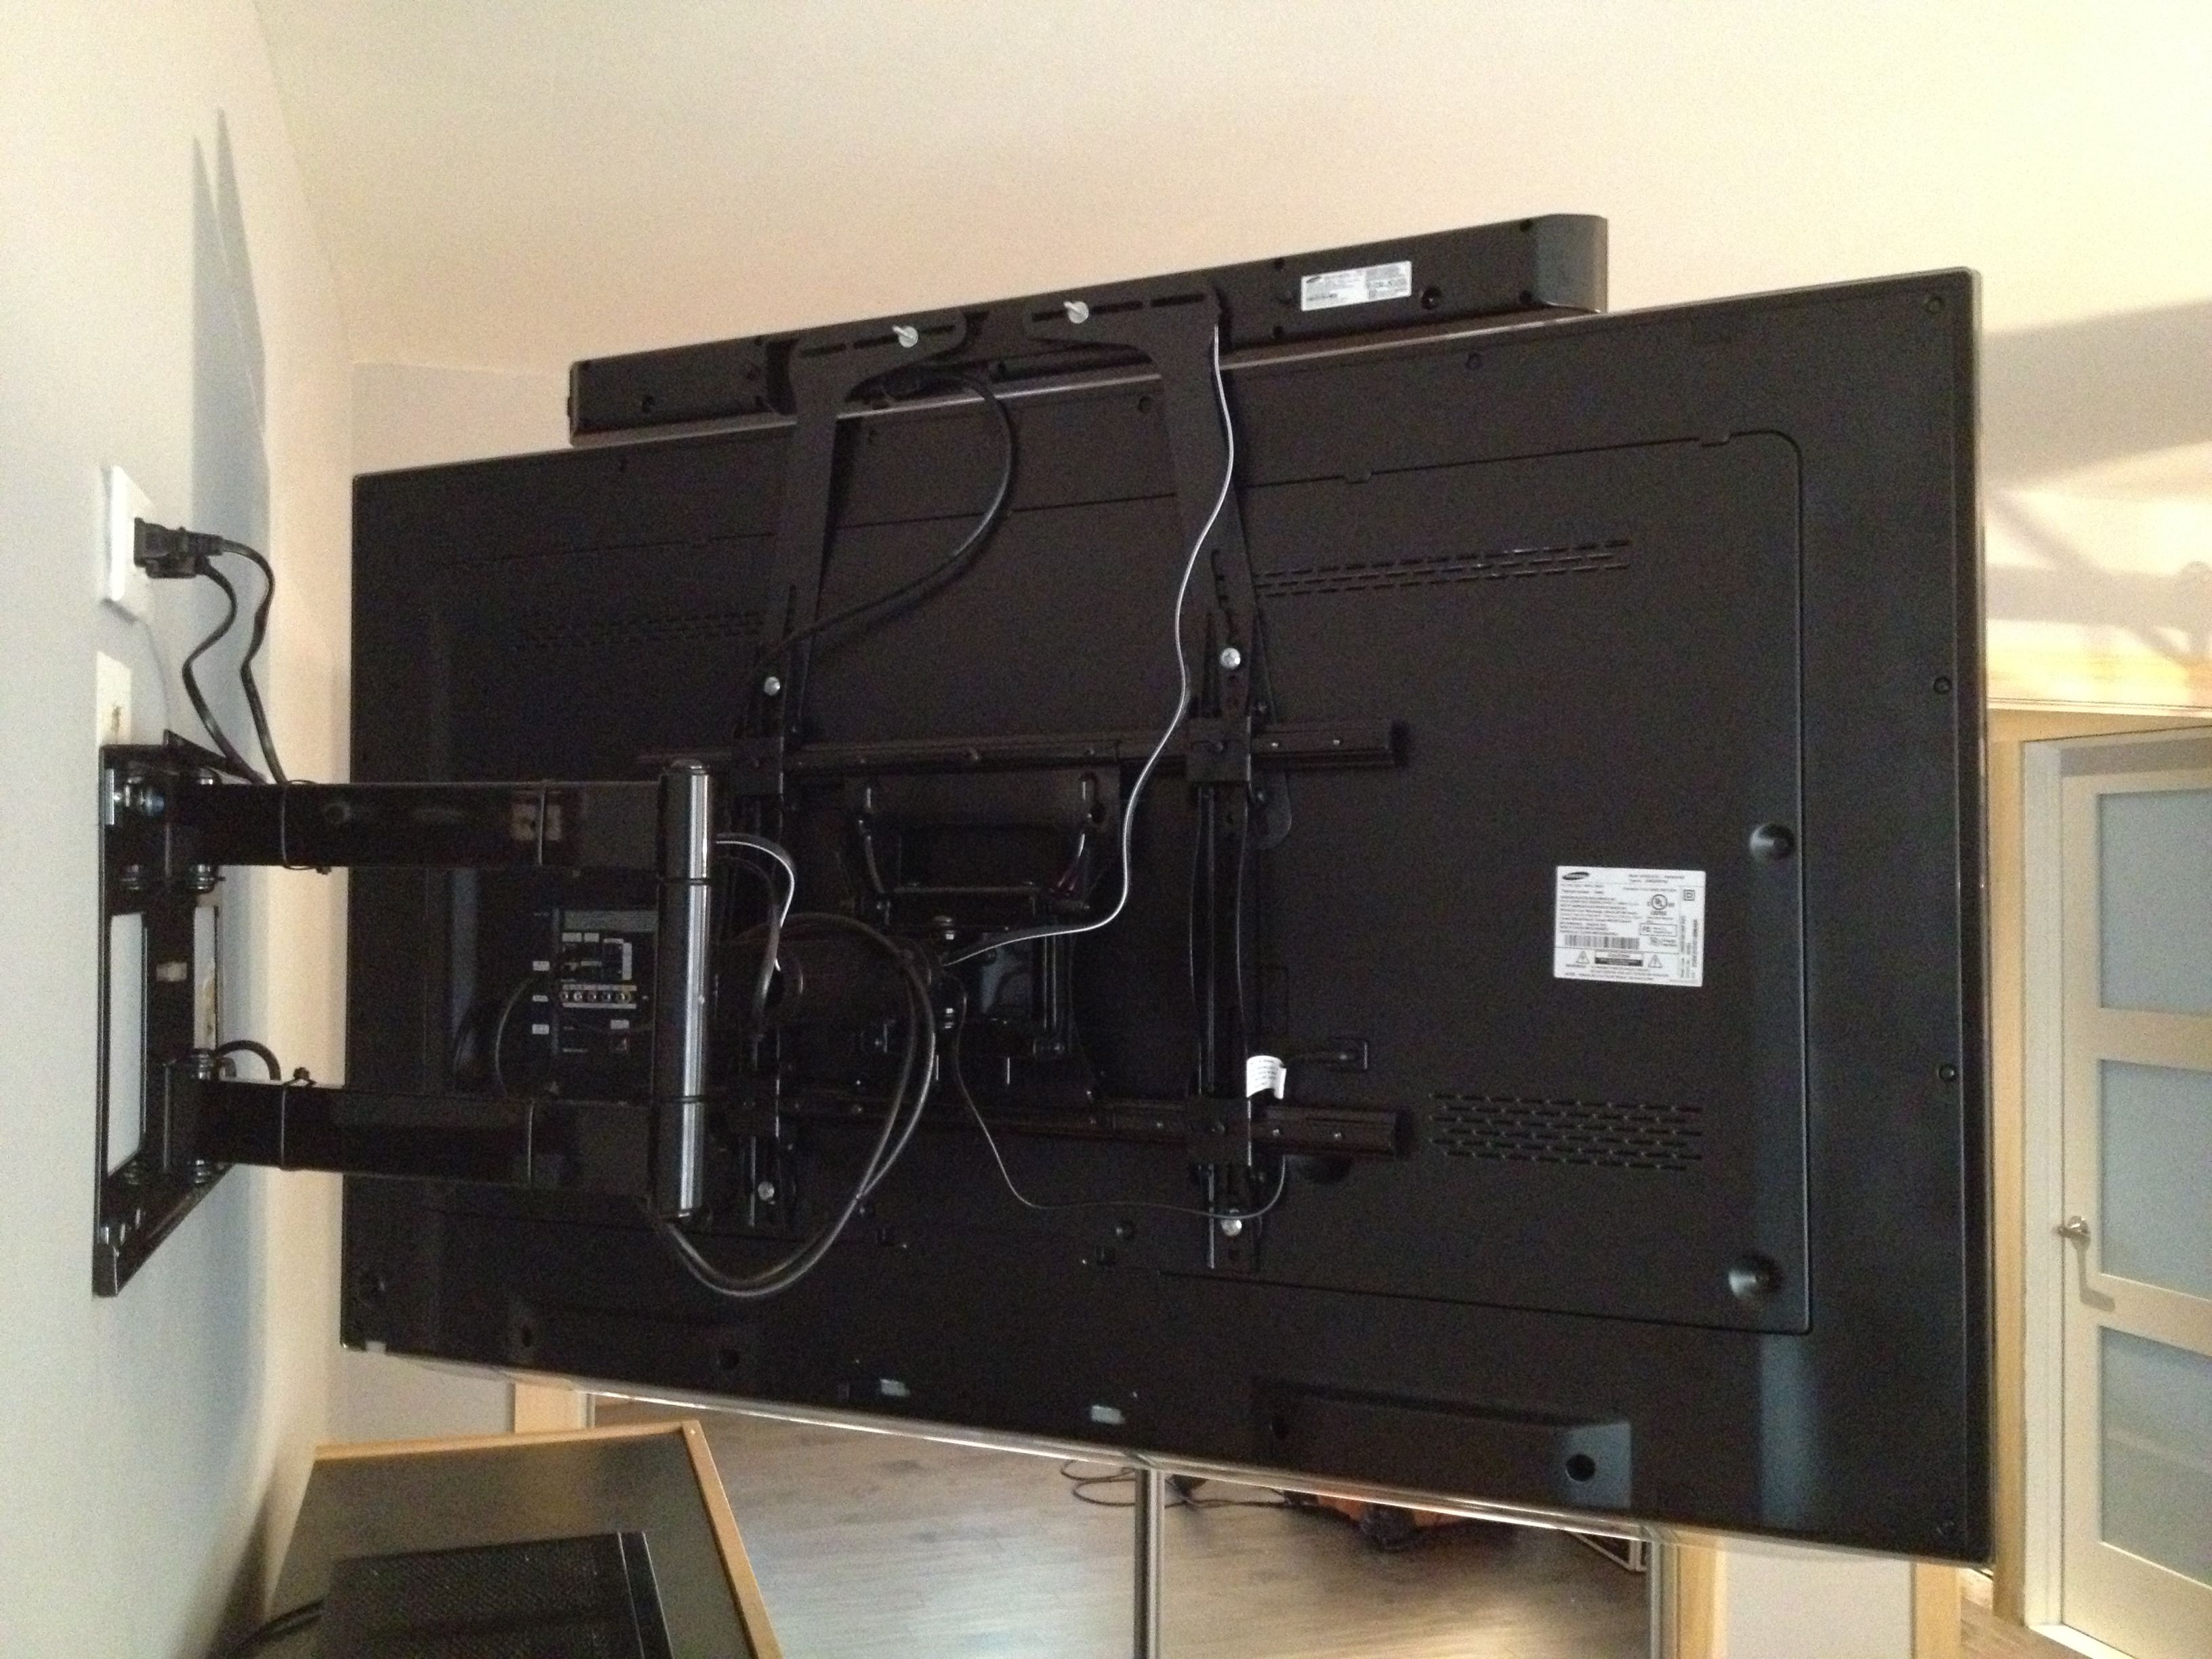 Sound Bar Installed To The Tv With Brackets Attached Back Of Articulating Bracket For Allows Point At